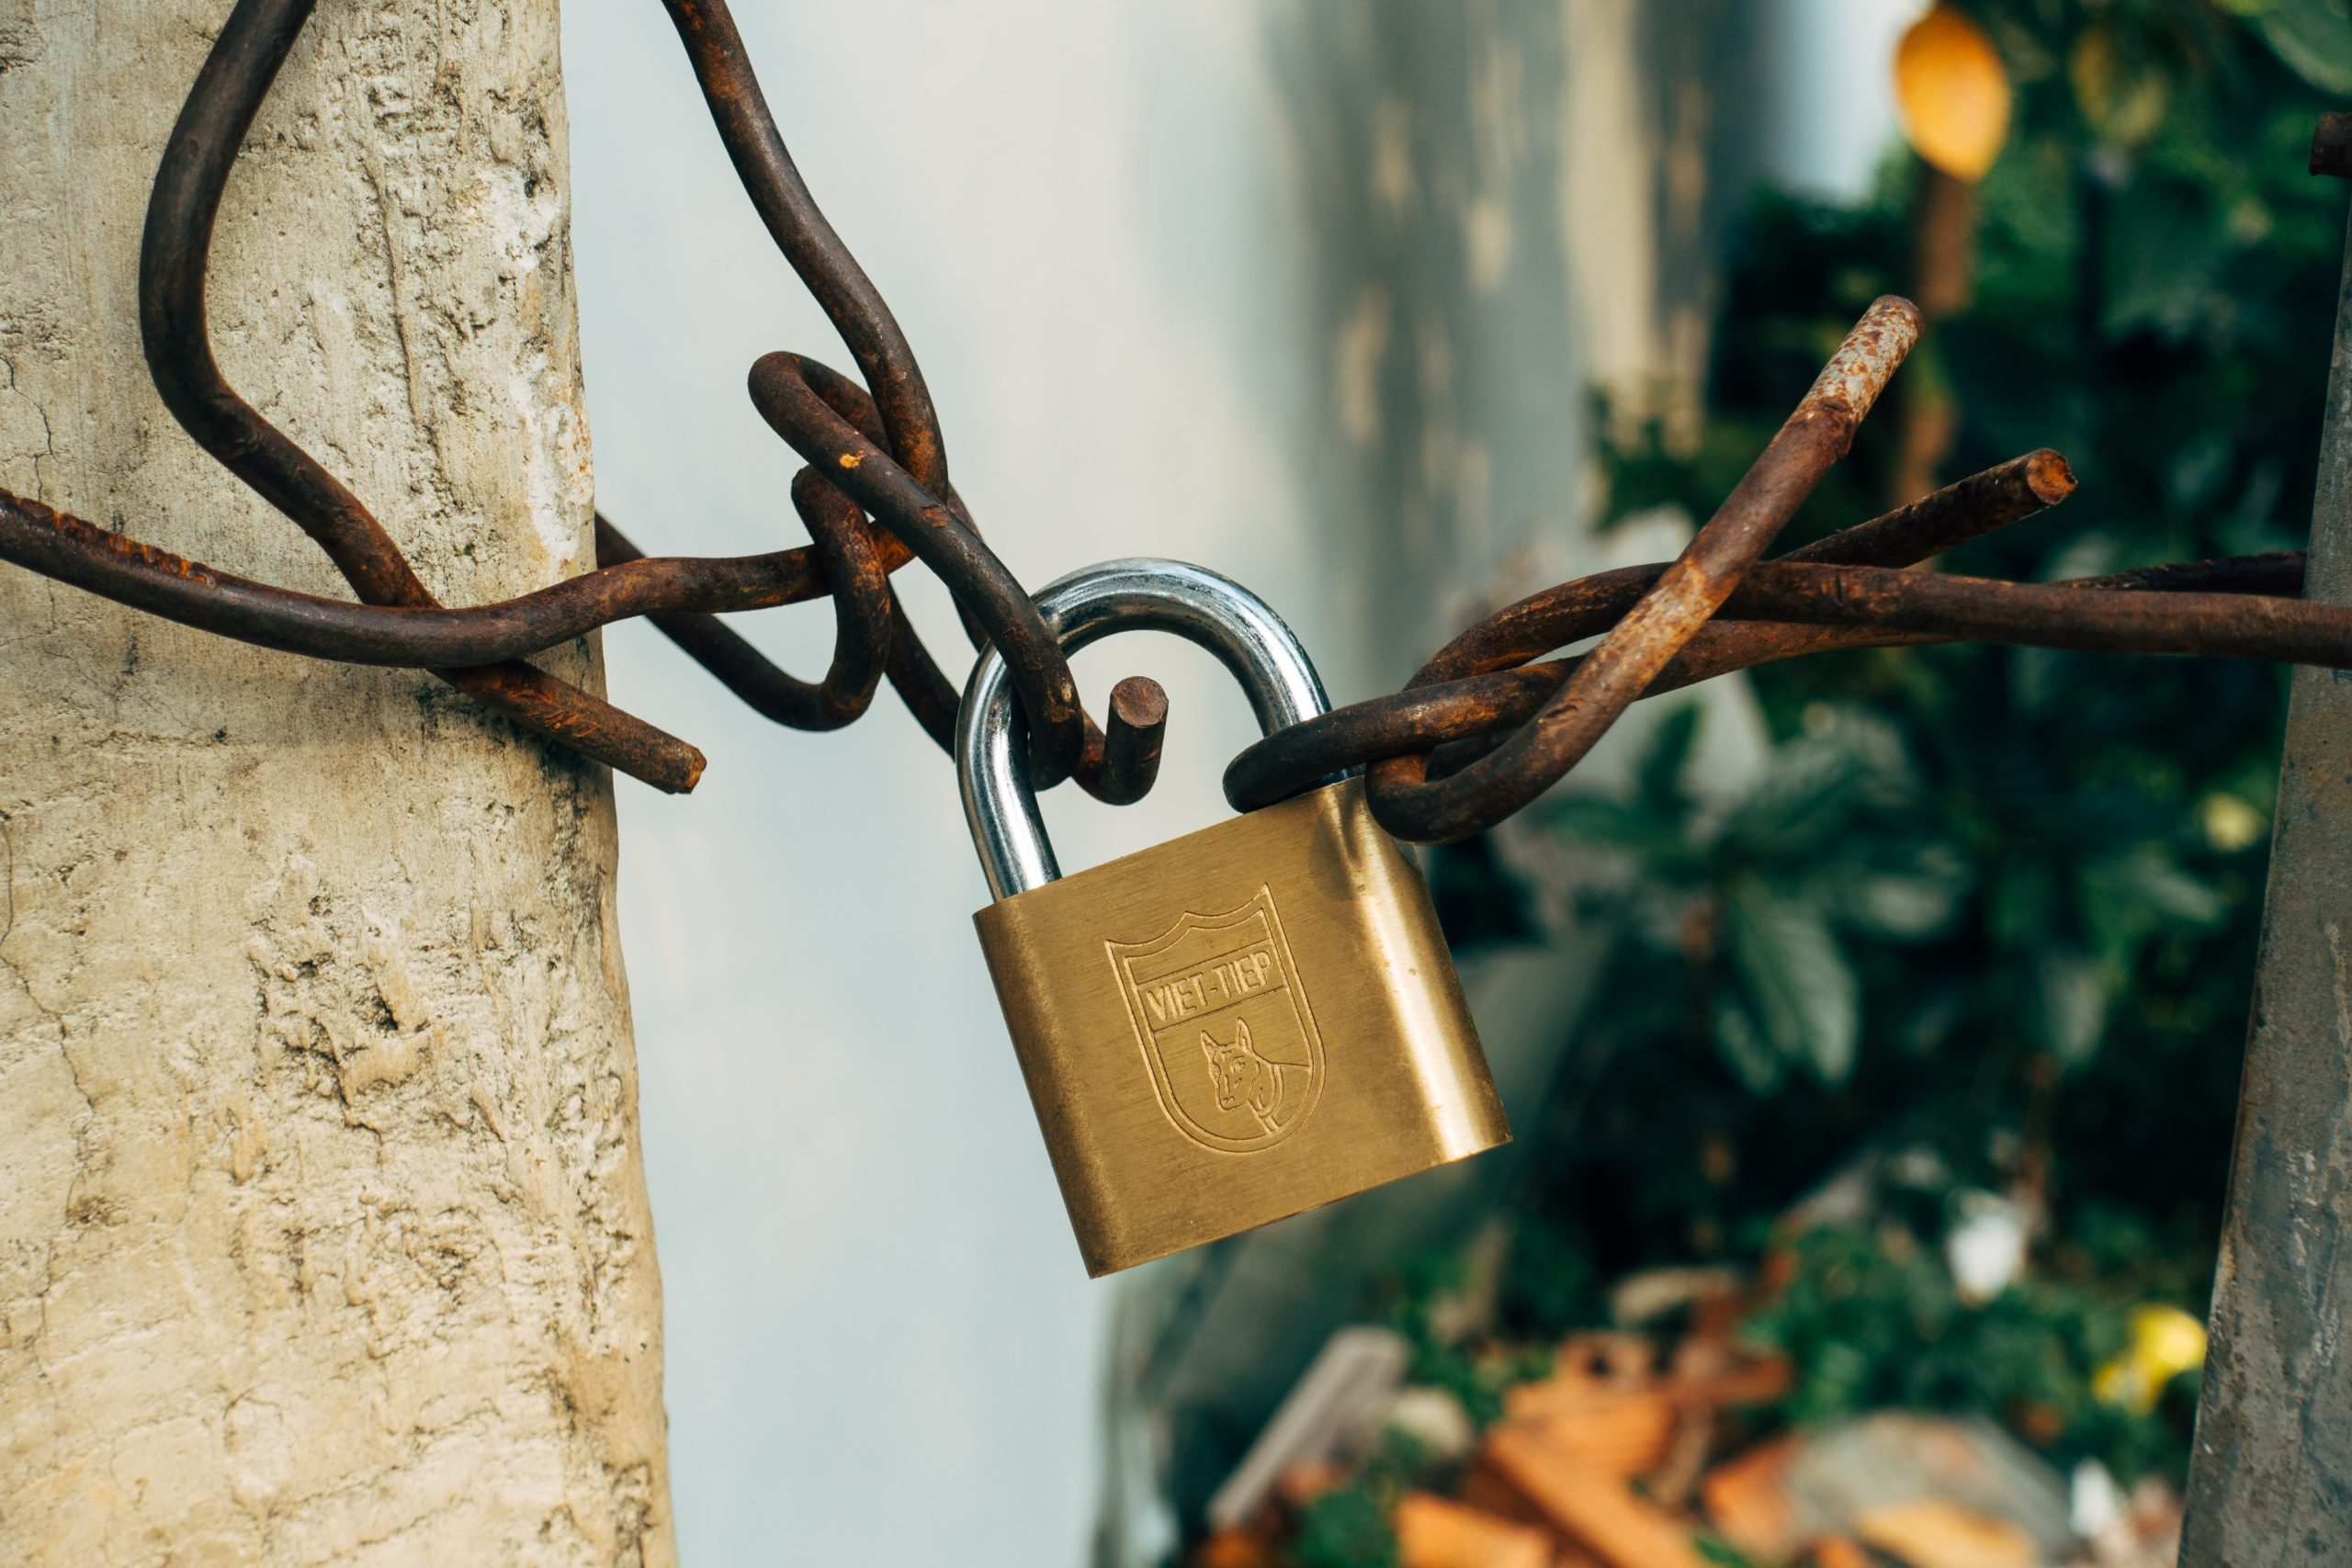 """Lock"" Photo by Markus Winkler on Unsplash"